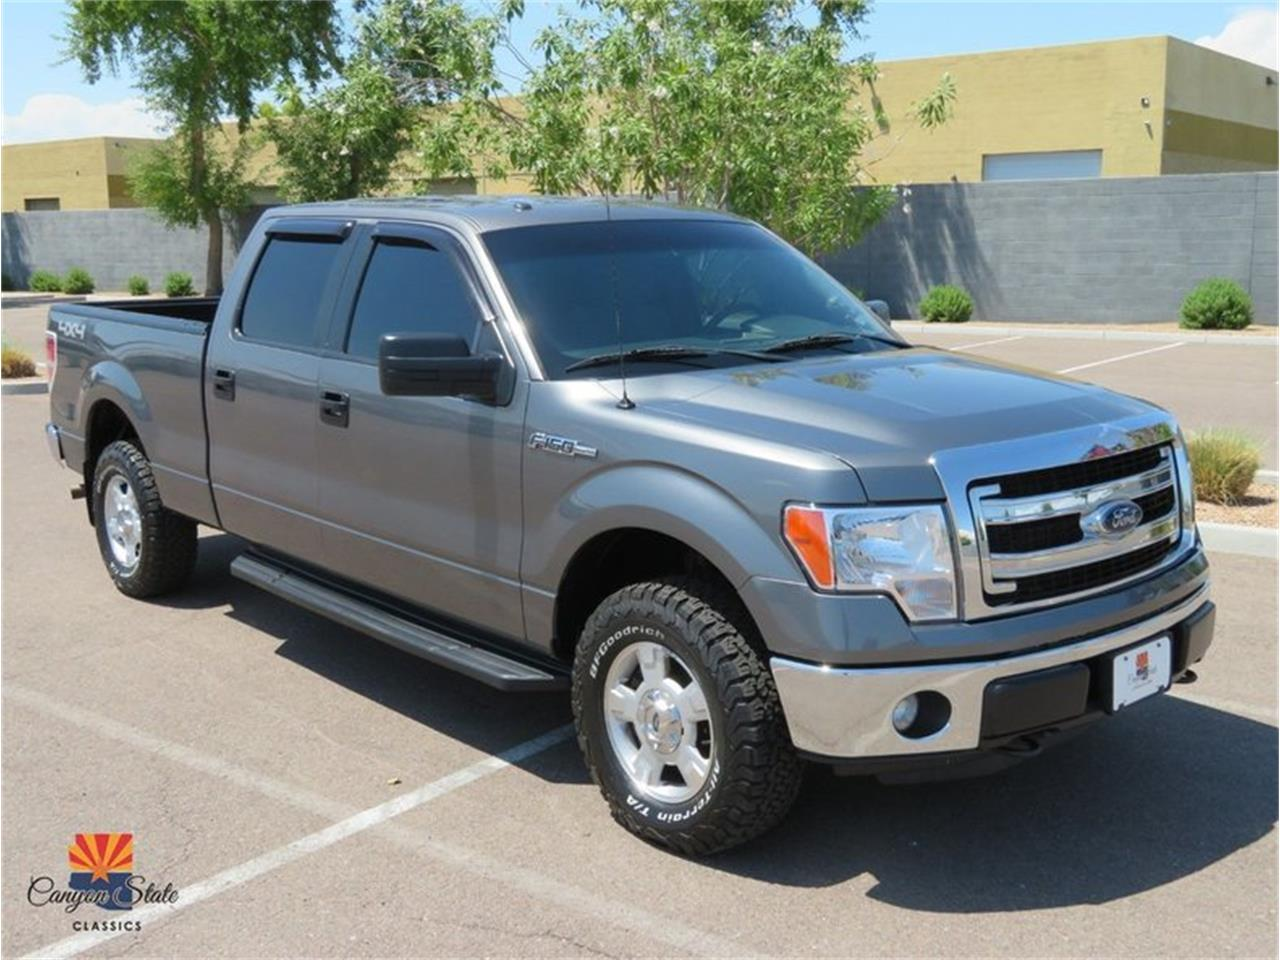 2014 Ford F150 for sale in Tempe, AZ – photo 31